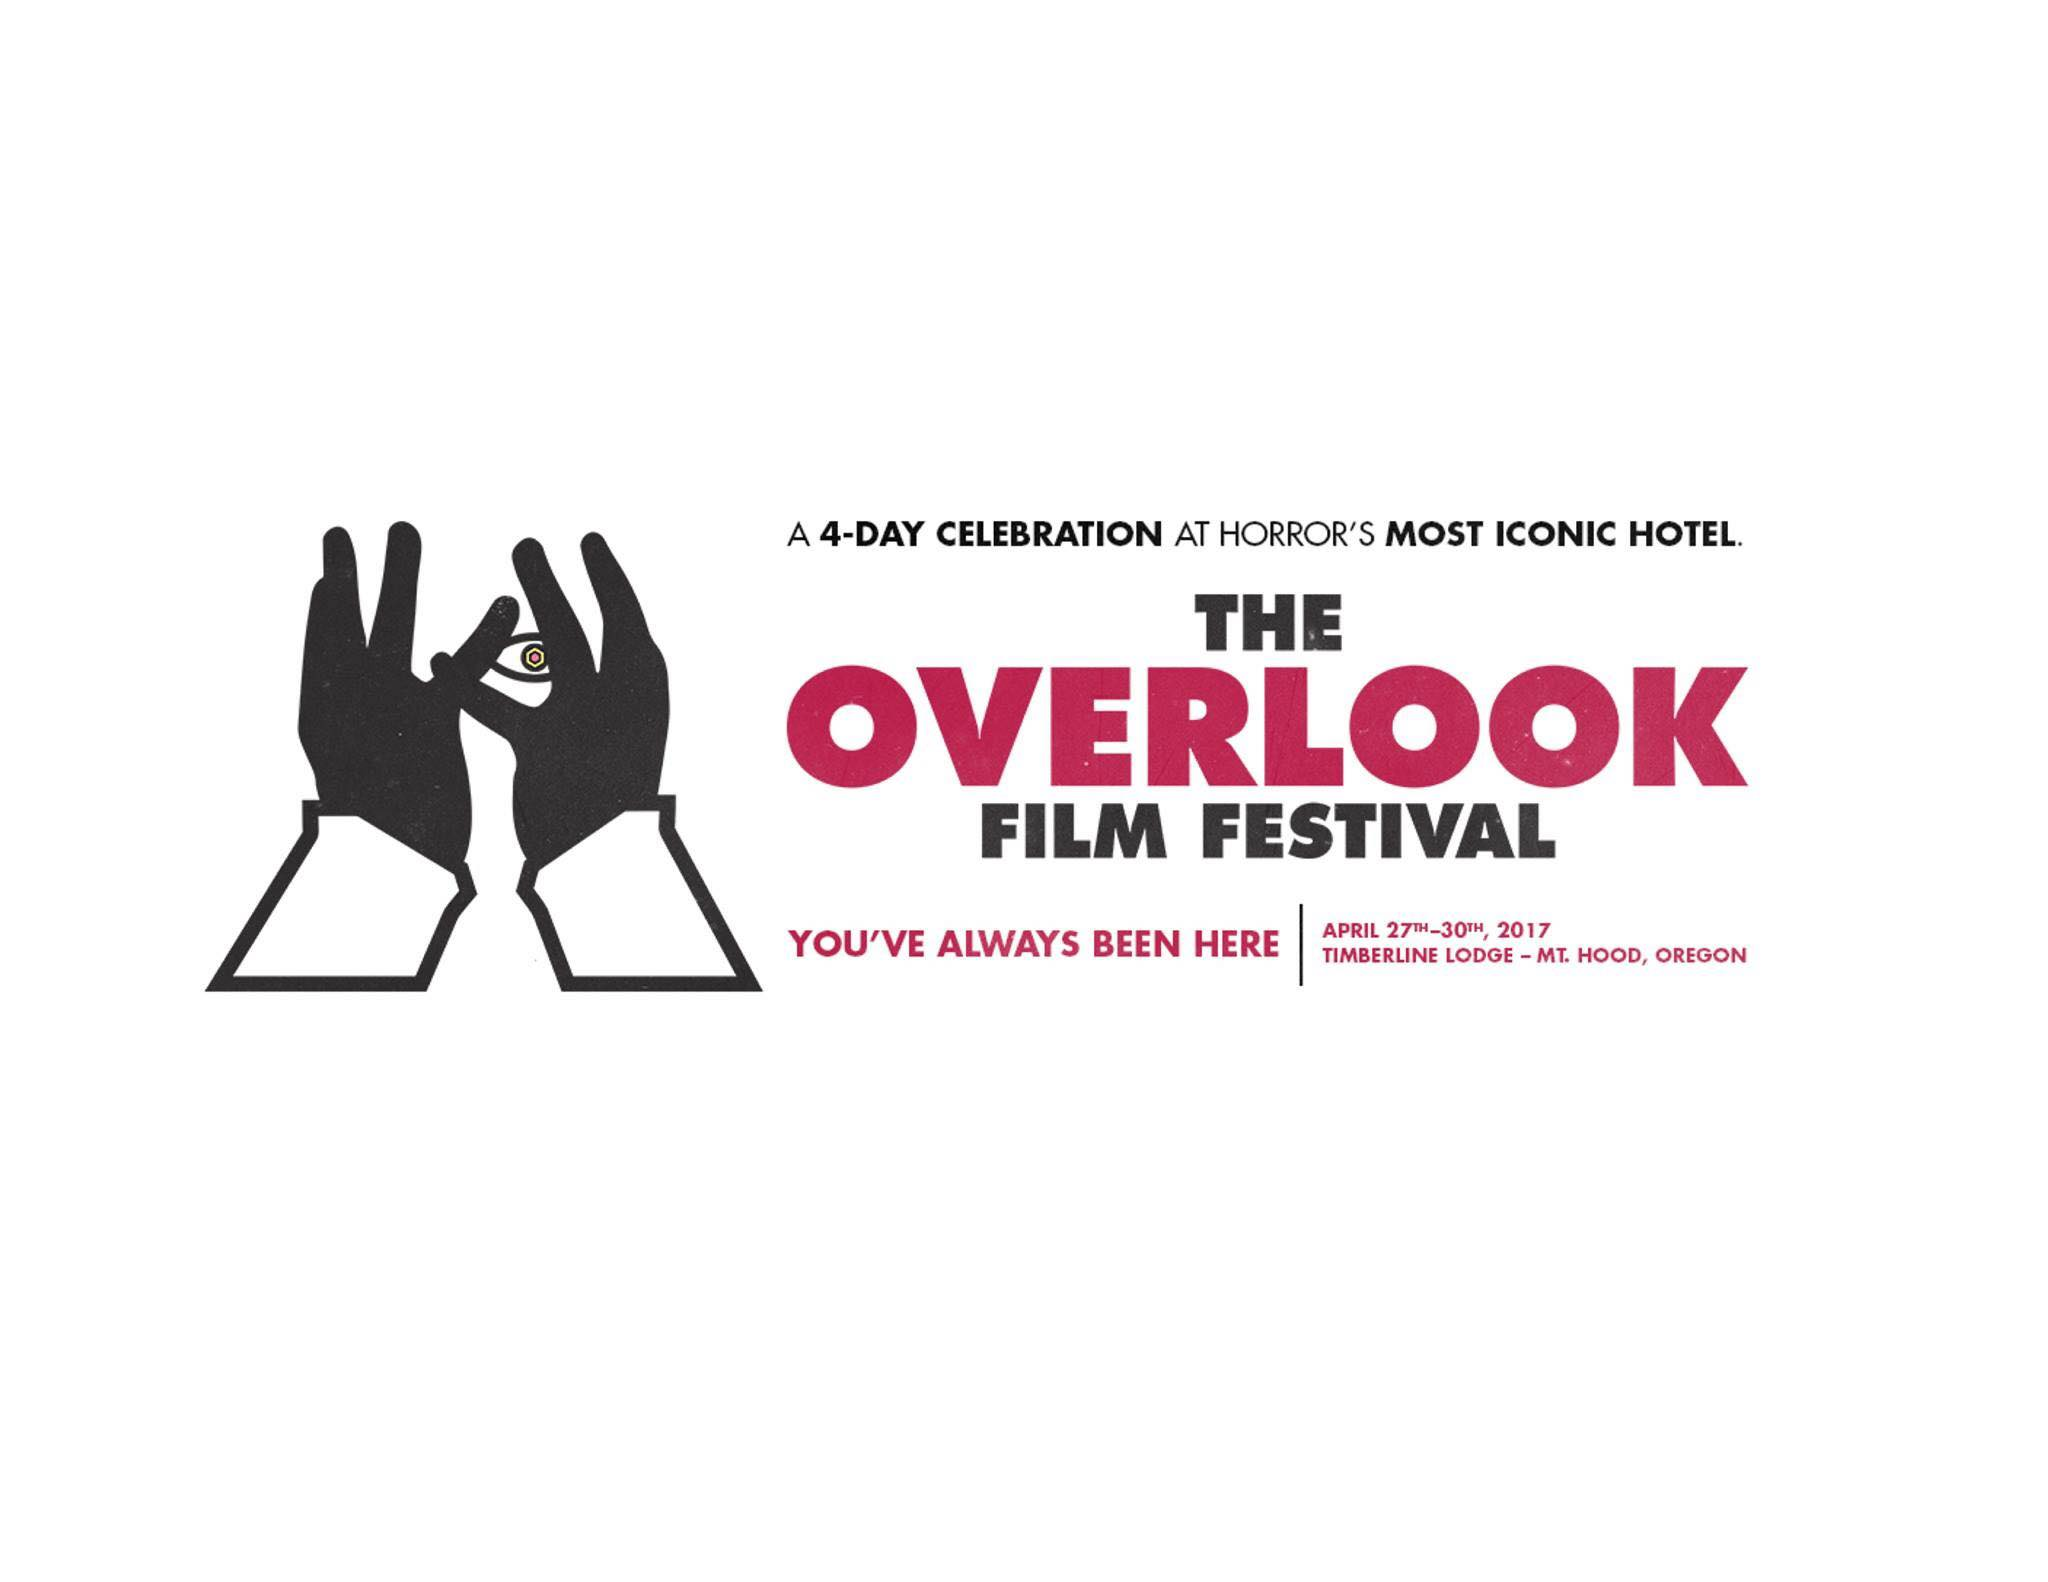 Winners Announced From The Overlook Film Festival | Horror World